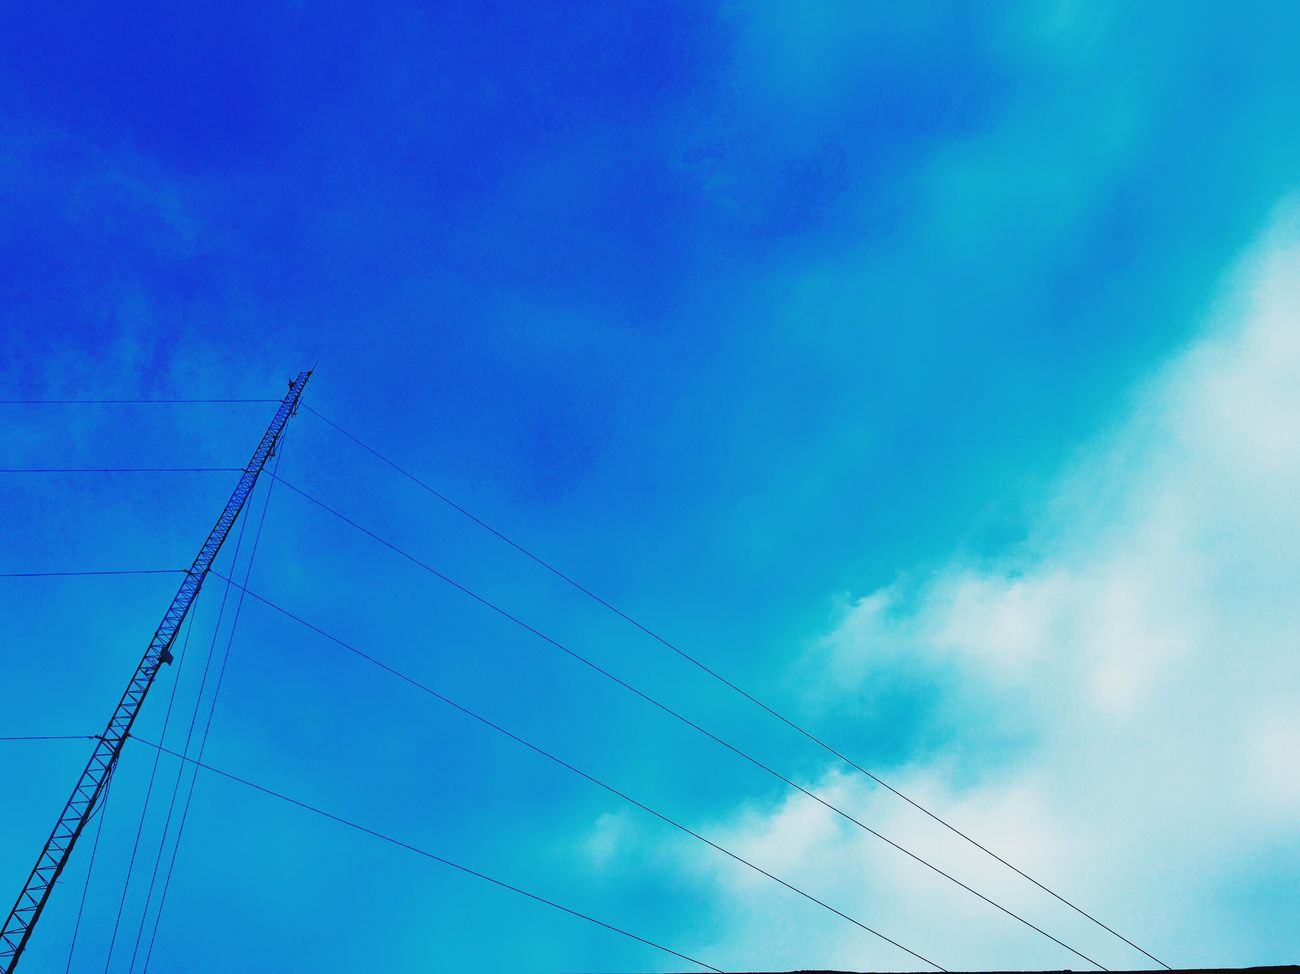 Sky Blue Connection Electricity  Cable Power Supply Power Line  No People Low Angle View Cloud - Sky Electricity Pylon Technology Outdoors Day Tranquility Nature Electricity Tower Telephone Line